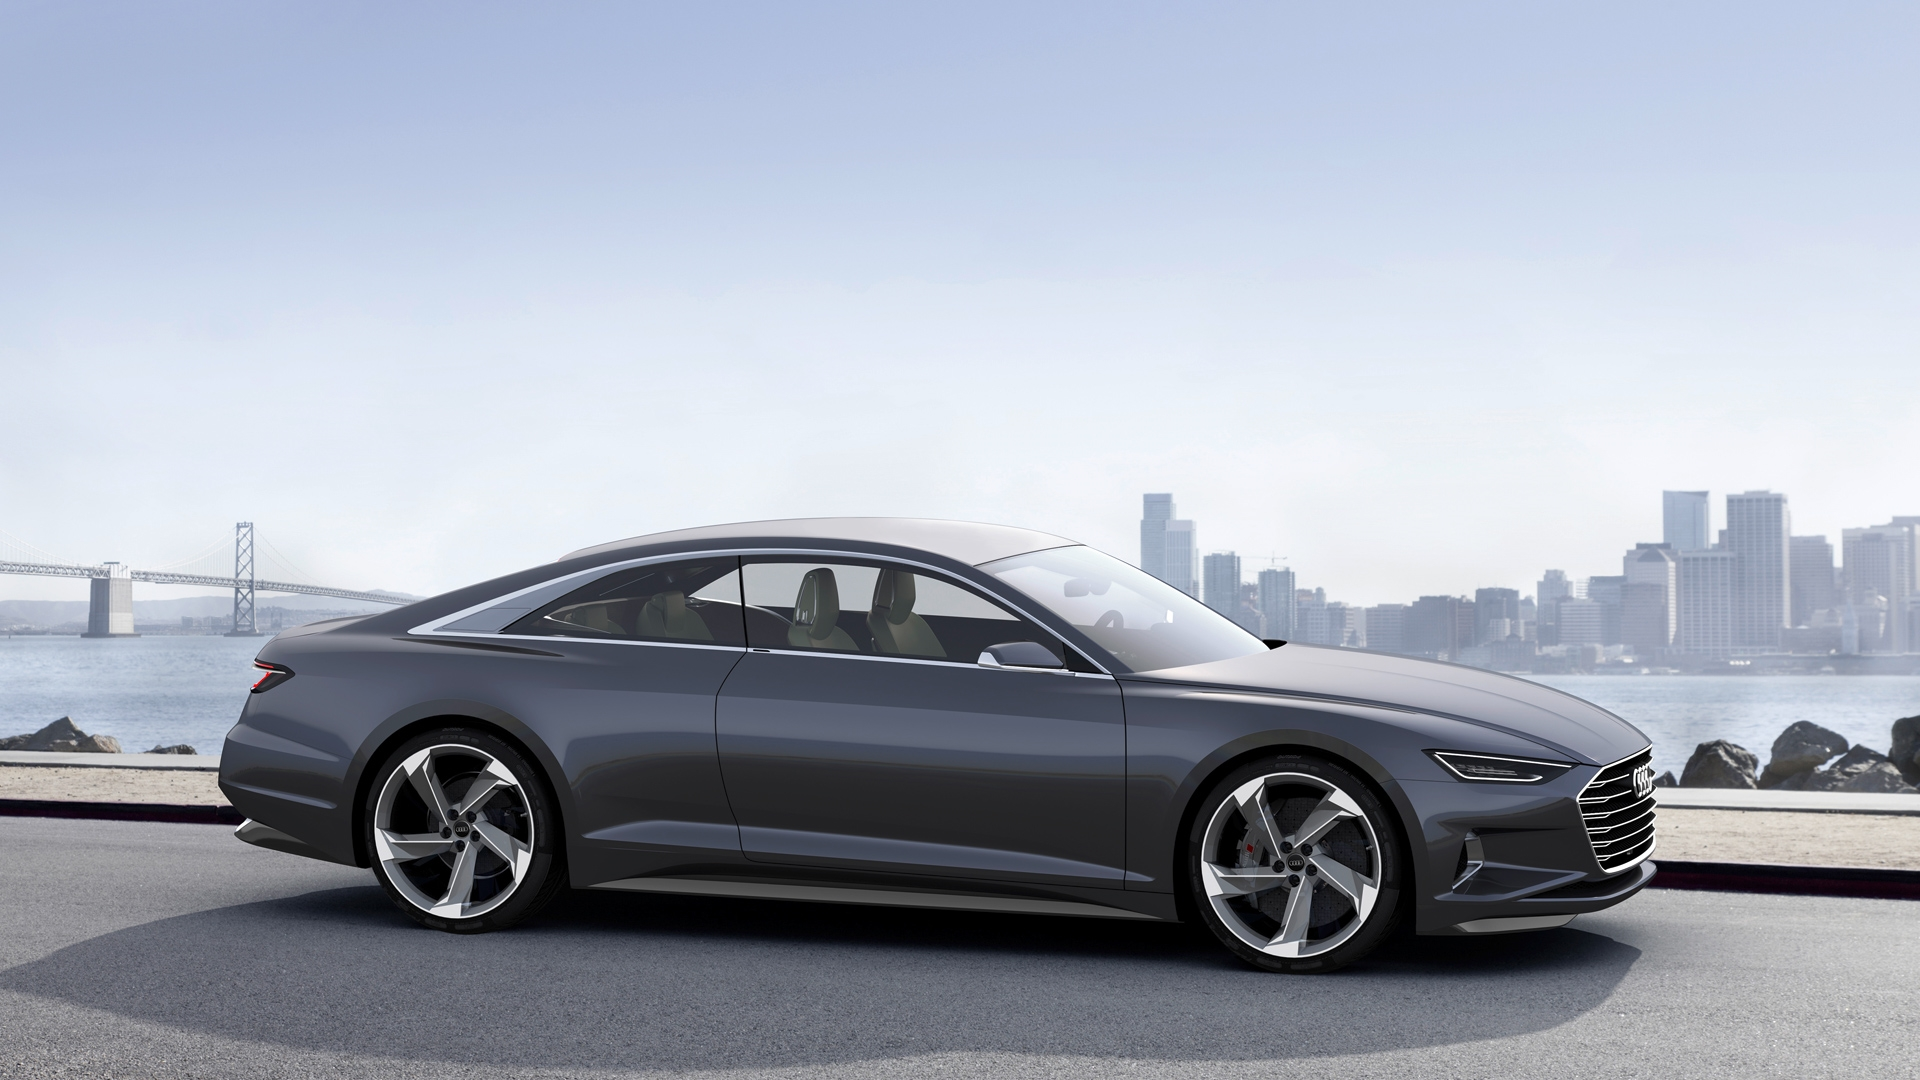 Audi Prologue Piloted Driving Wallpaper For Computer